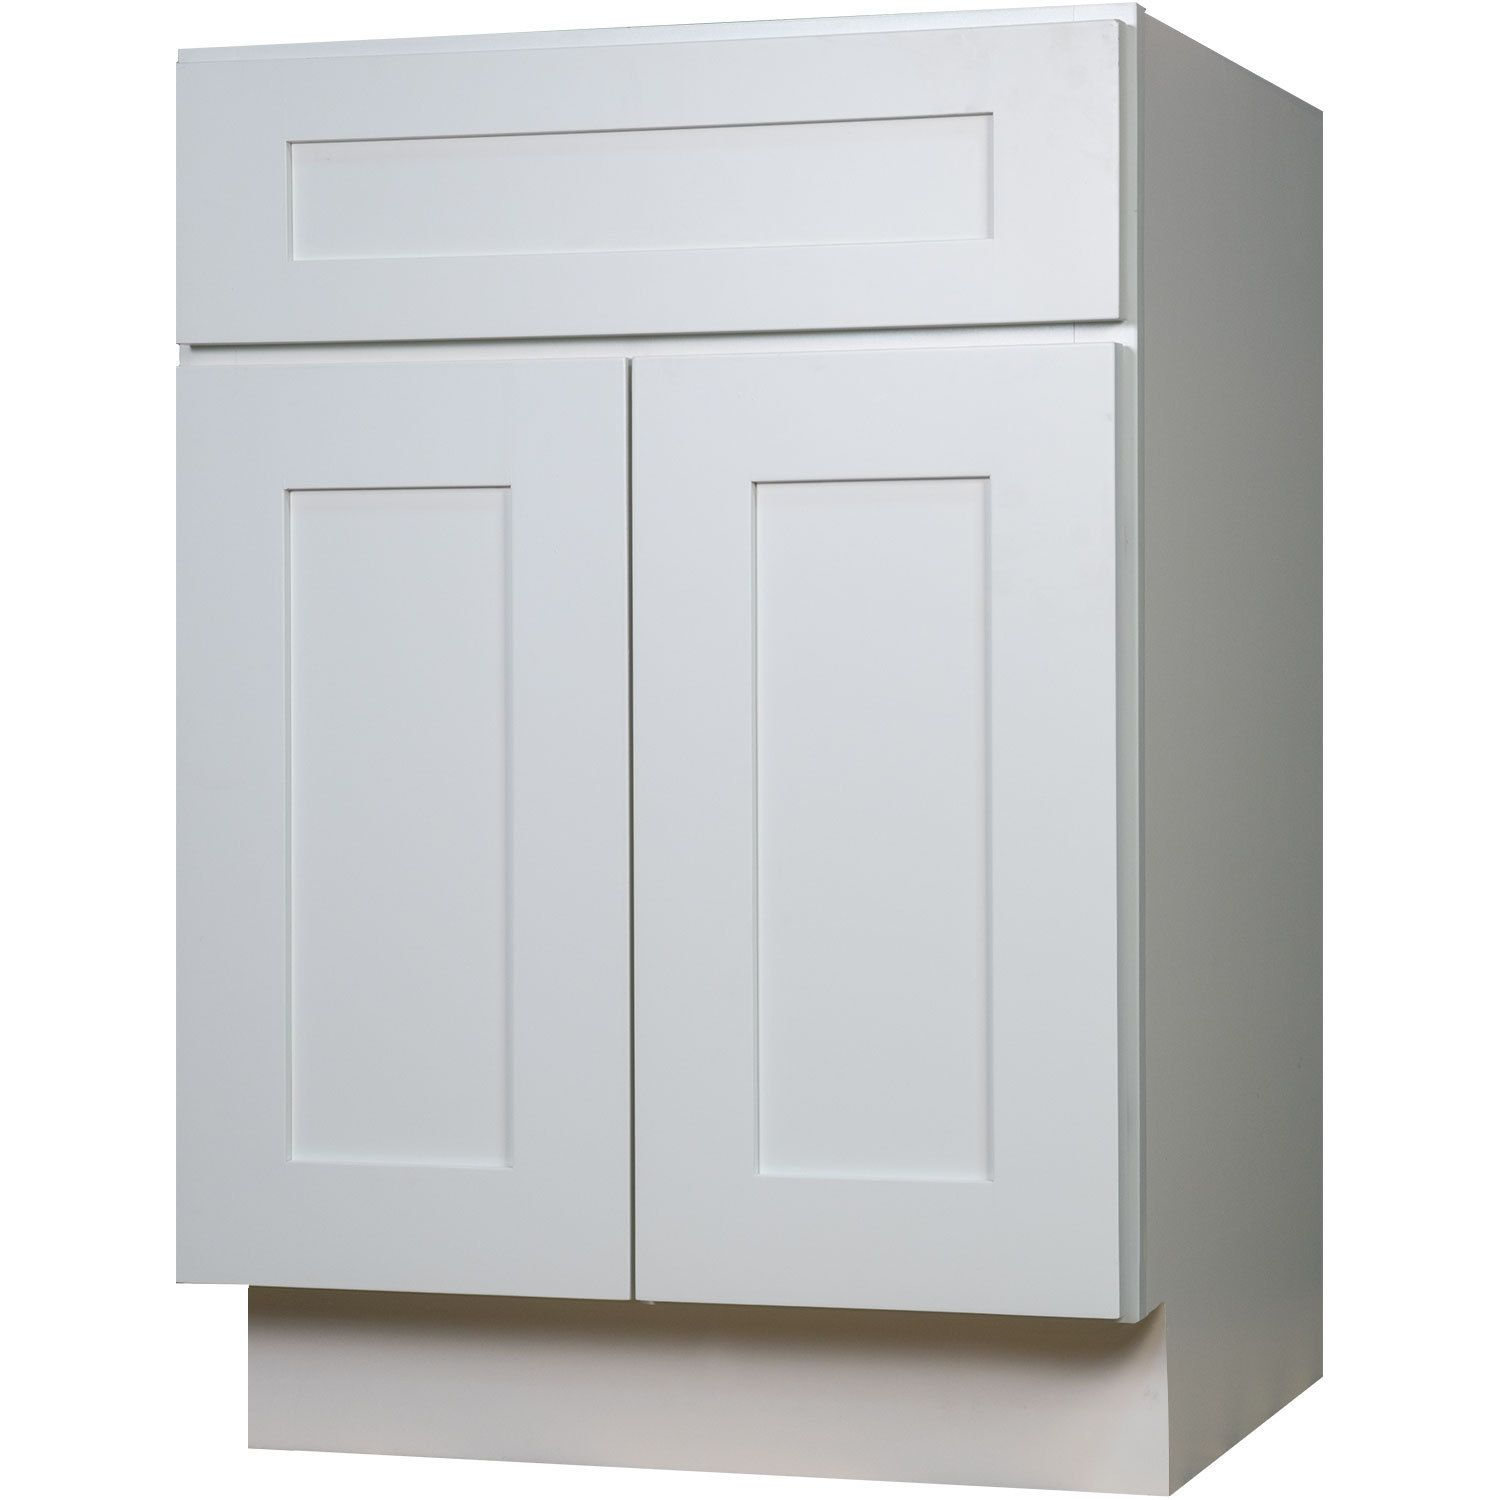 white shaker bathroom vanity. Everyday Cabinets SWHV3021 White Shaker Wood 30-inch Single Sink Bathroom Vanity Cabinet (White I